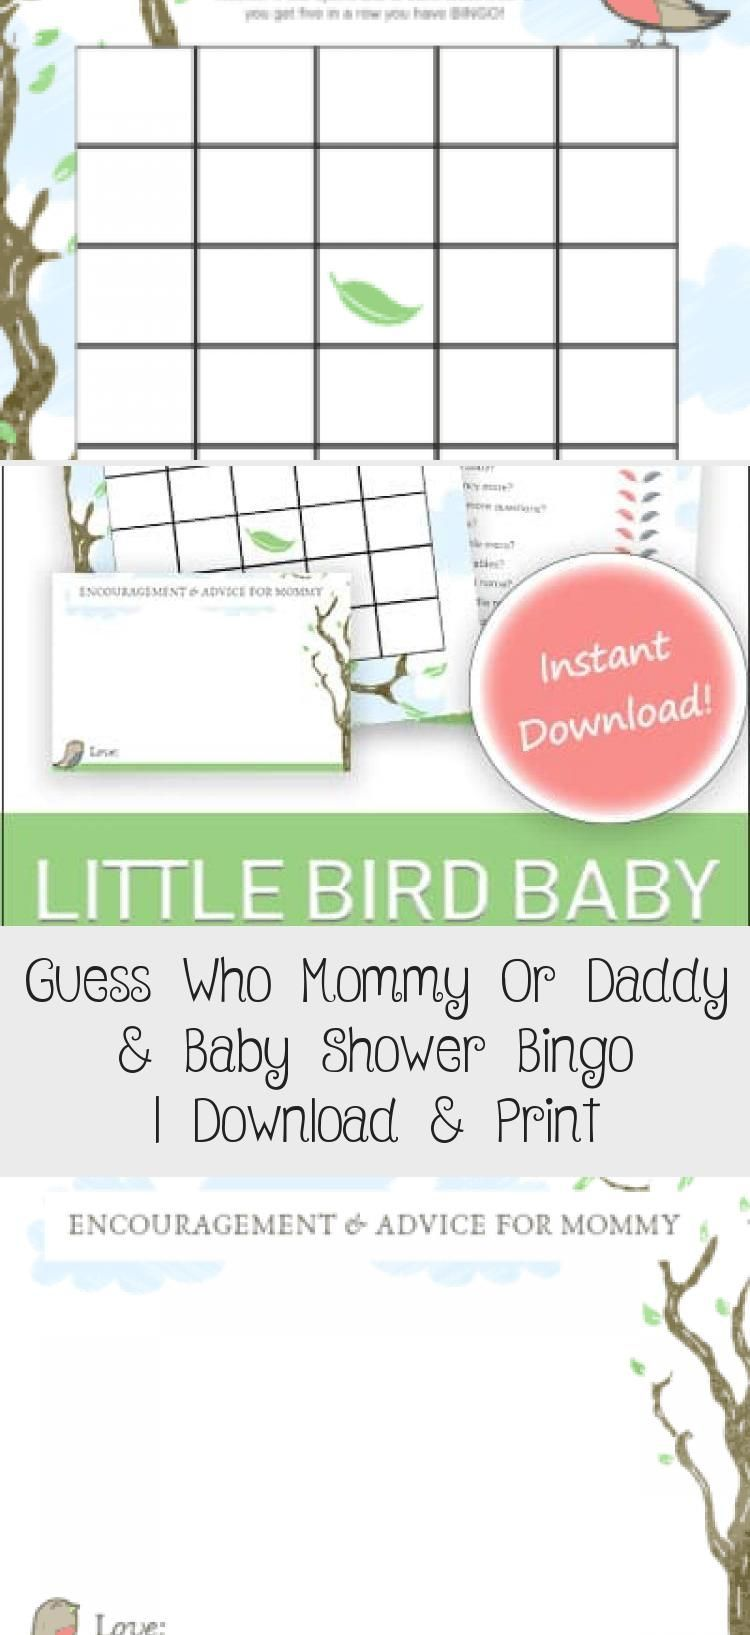 This cute bird theme baby shower game is great for large groups Enjoy funny memories as guests select whether they think the parents answered mommy or daddy for each ques...